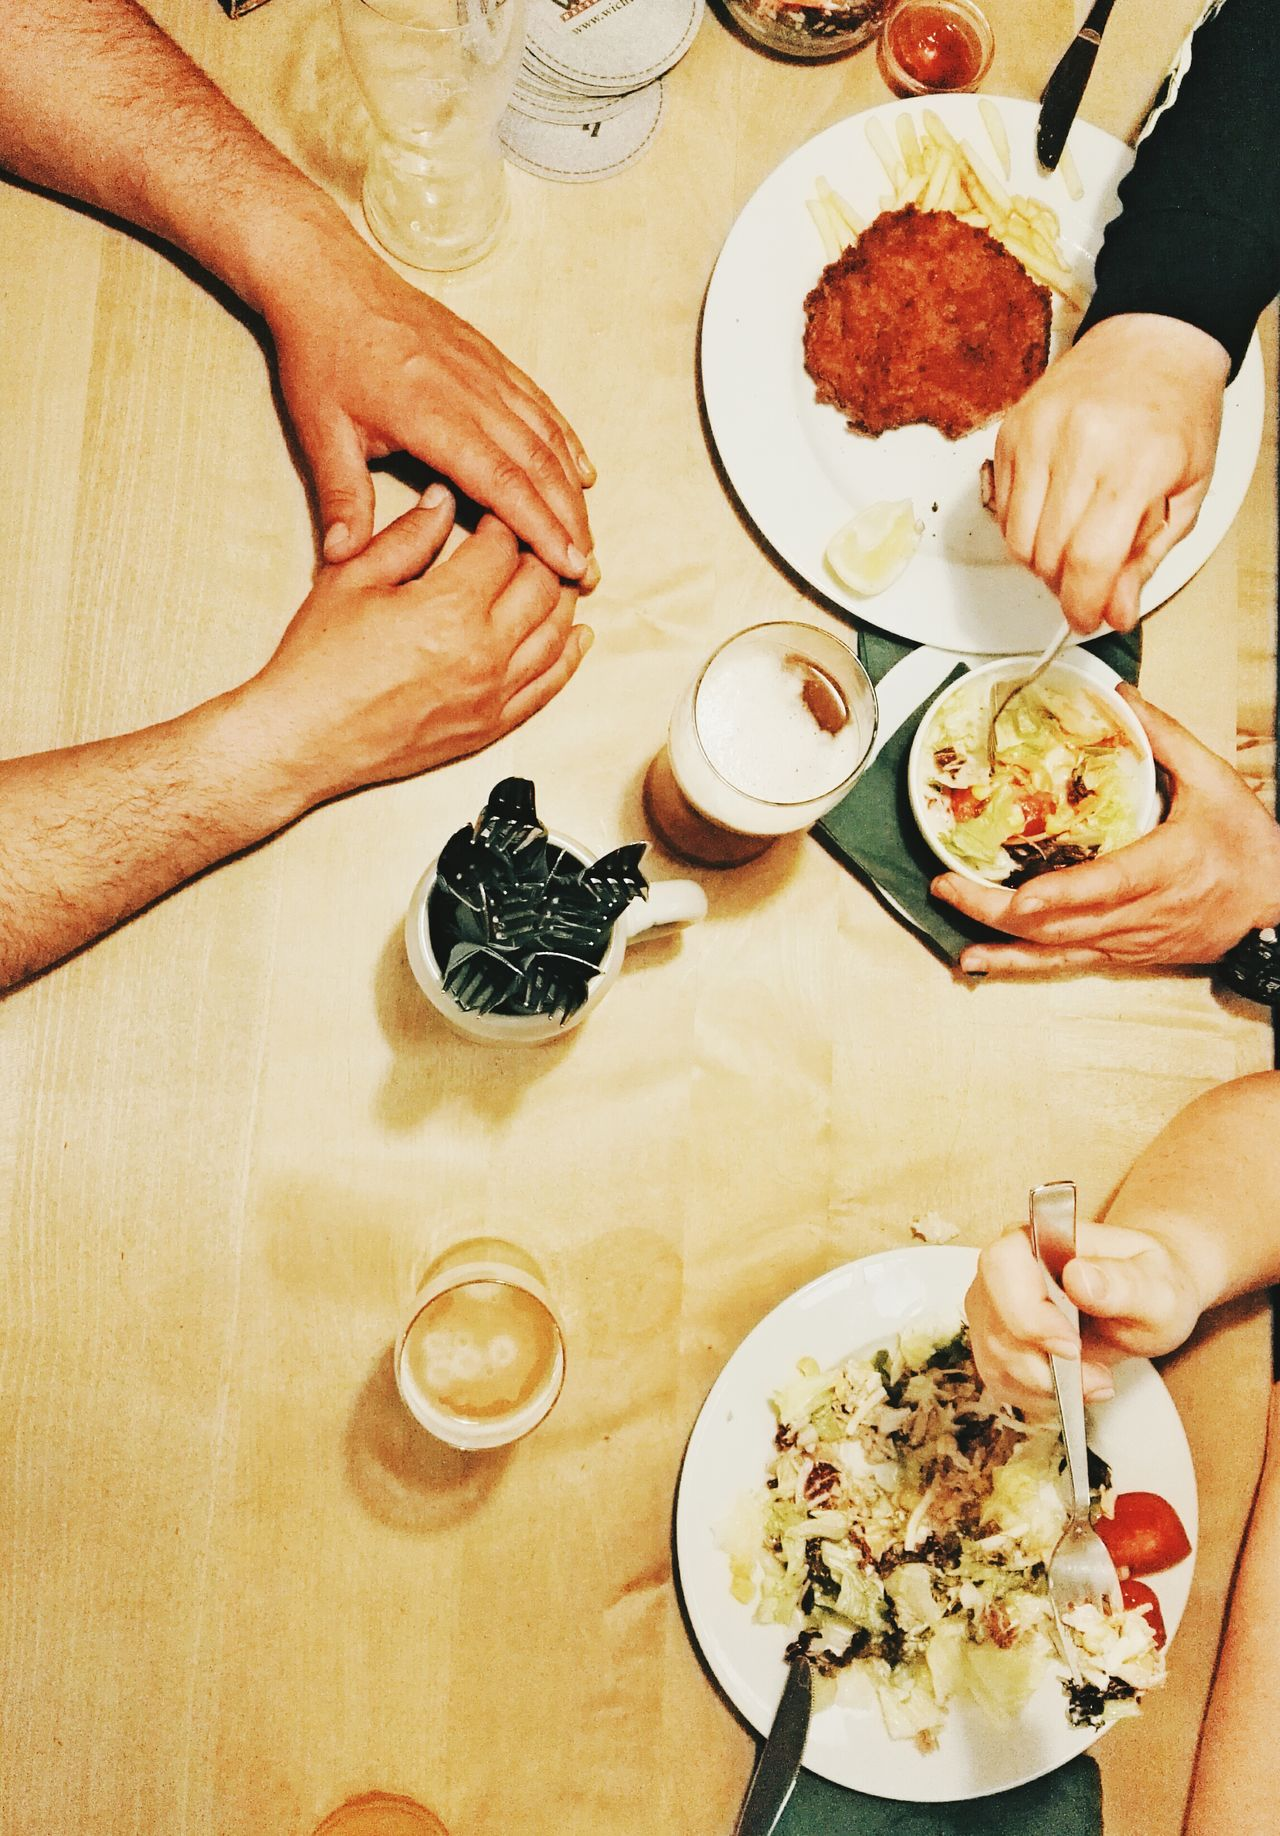 Eating together Table Food And Drink Human Body Part Indoors  Plate Human Hand High Angle View Food Freshness Directly Above Ready-to-eat Dessert People Adults Only Eating Together Eating With Friends Visual Feast